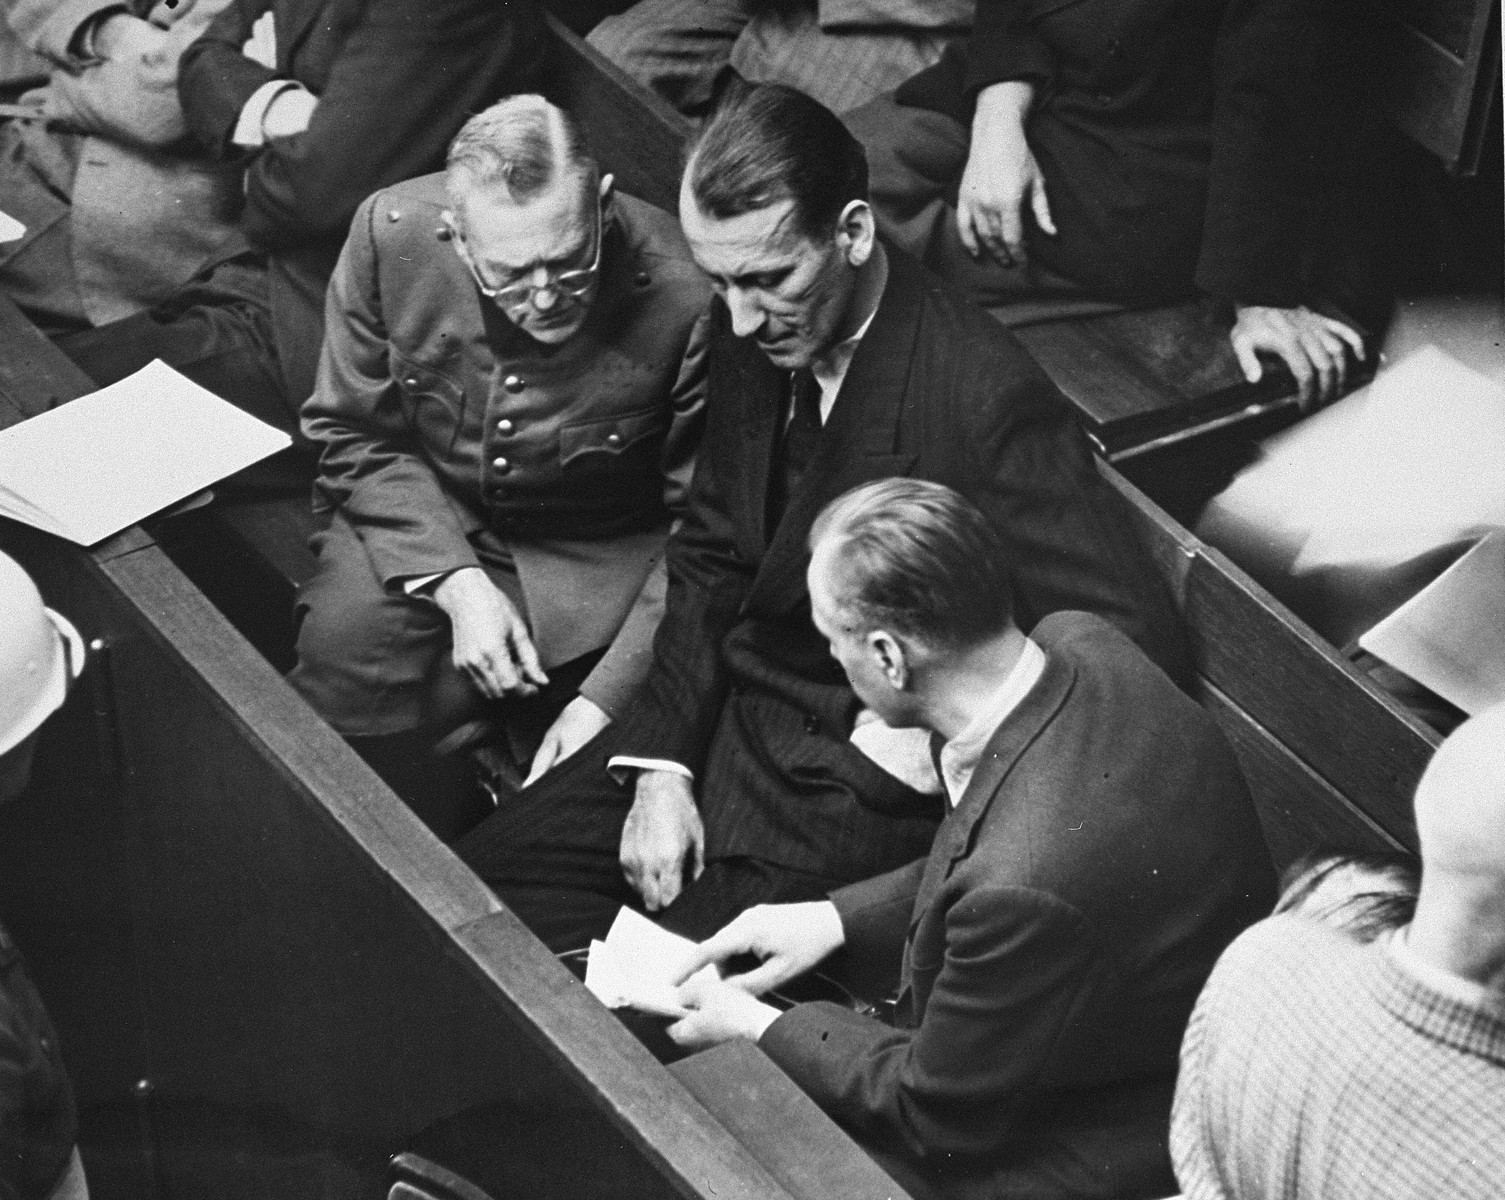 Defendants Wilhelm Keitel (left), Ernst Kaltenbrunner (middle), and Alfred Rosenberg (right), talk during a recess in the proceedings at the International Military Tribunal trial of war criminals at Nuremberg.